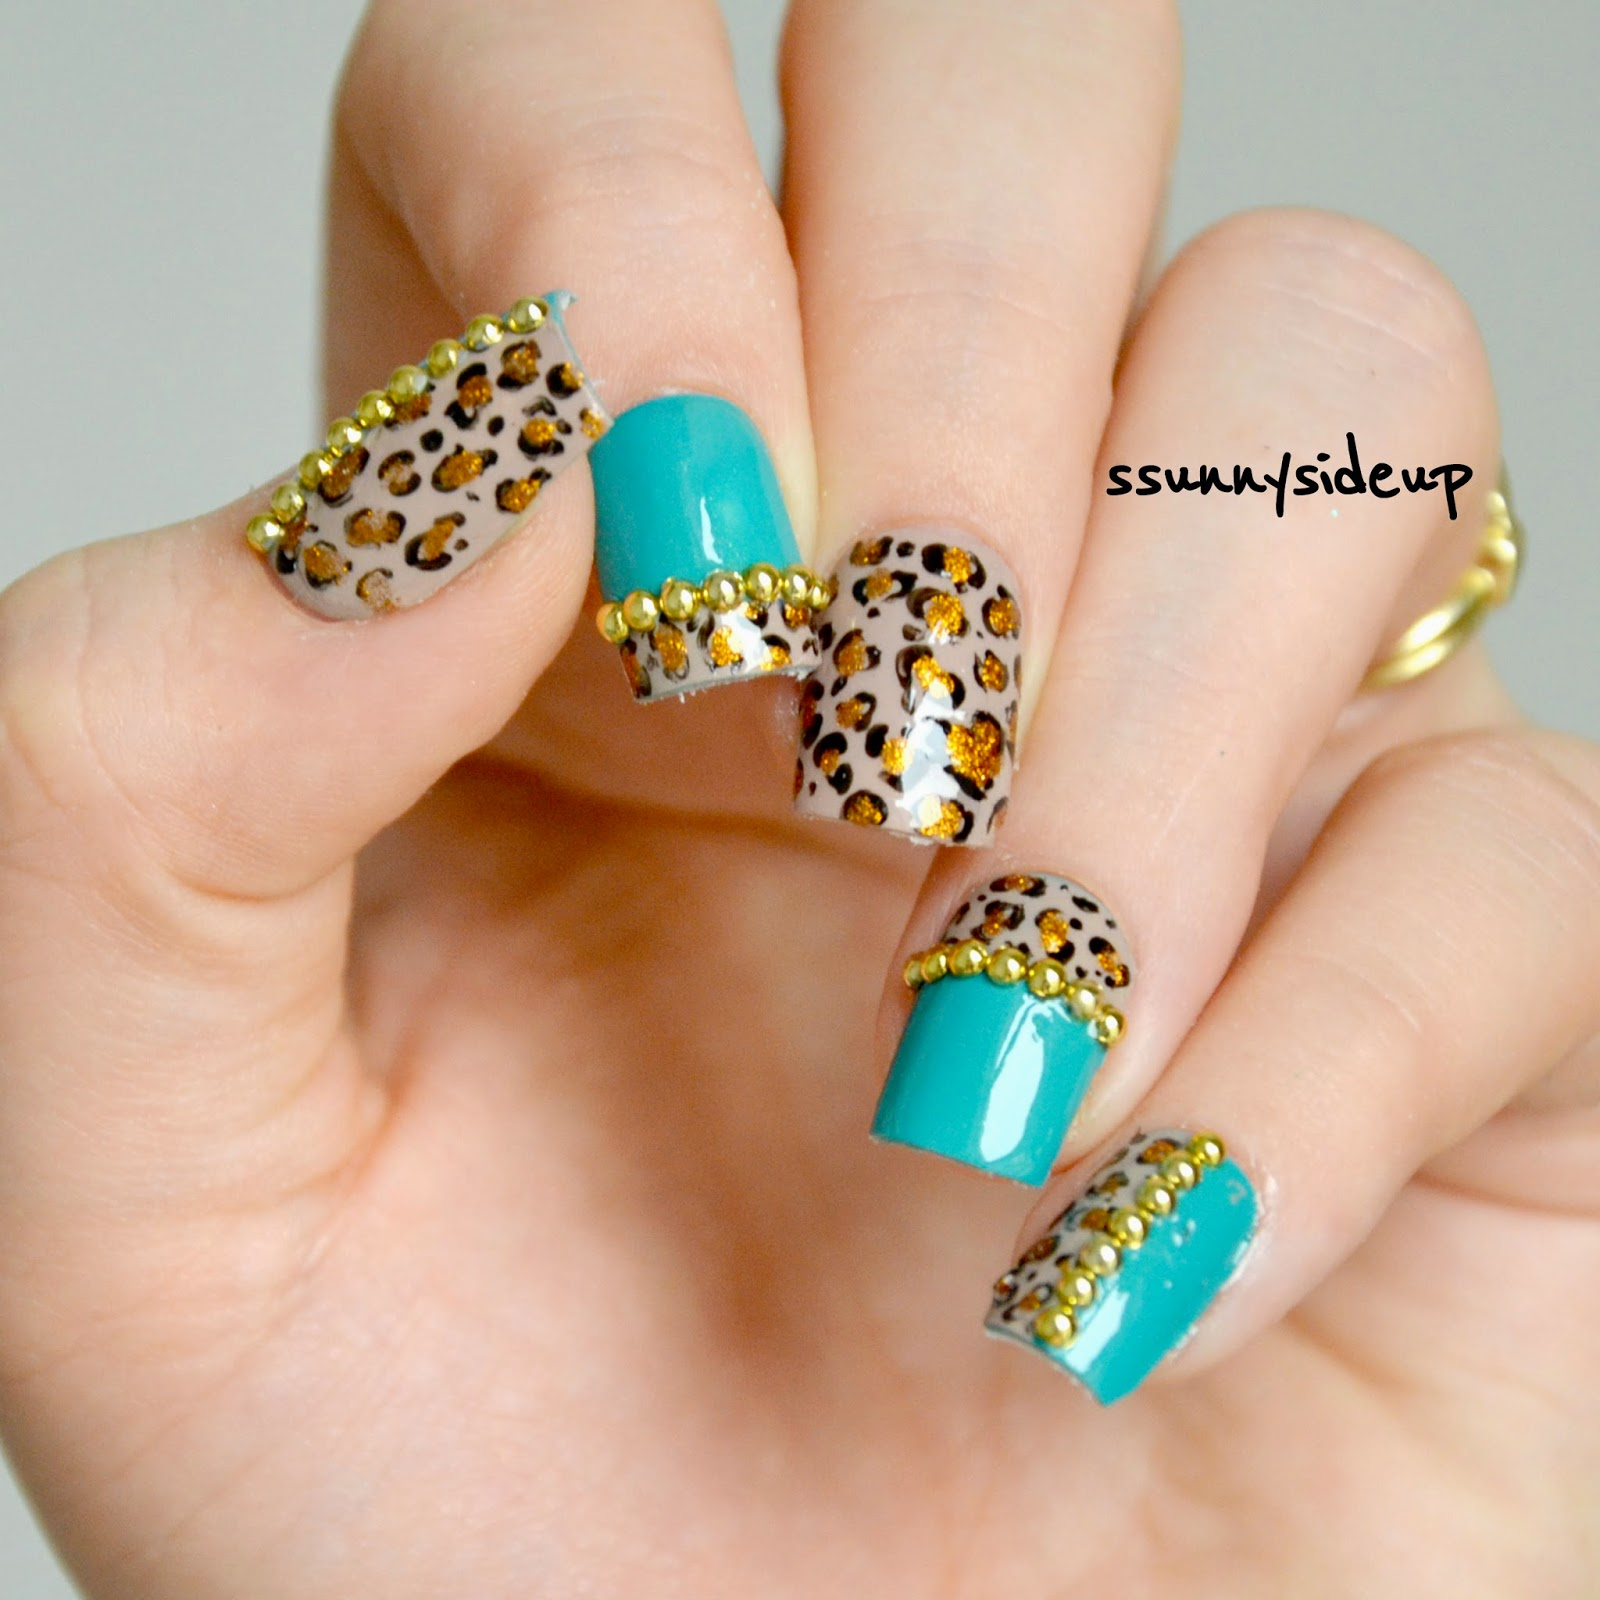 ssunnysideup: [REVIEW] Leopard print nails with studs from ...